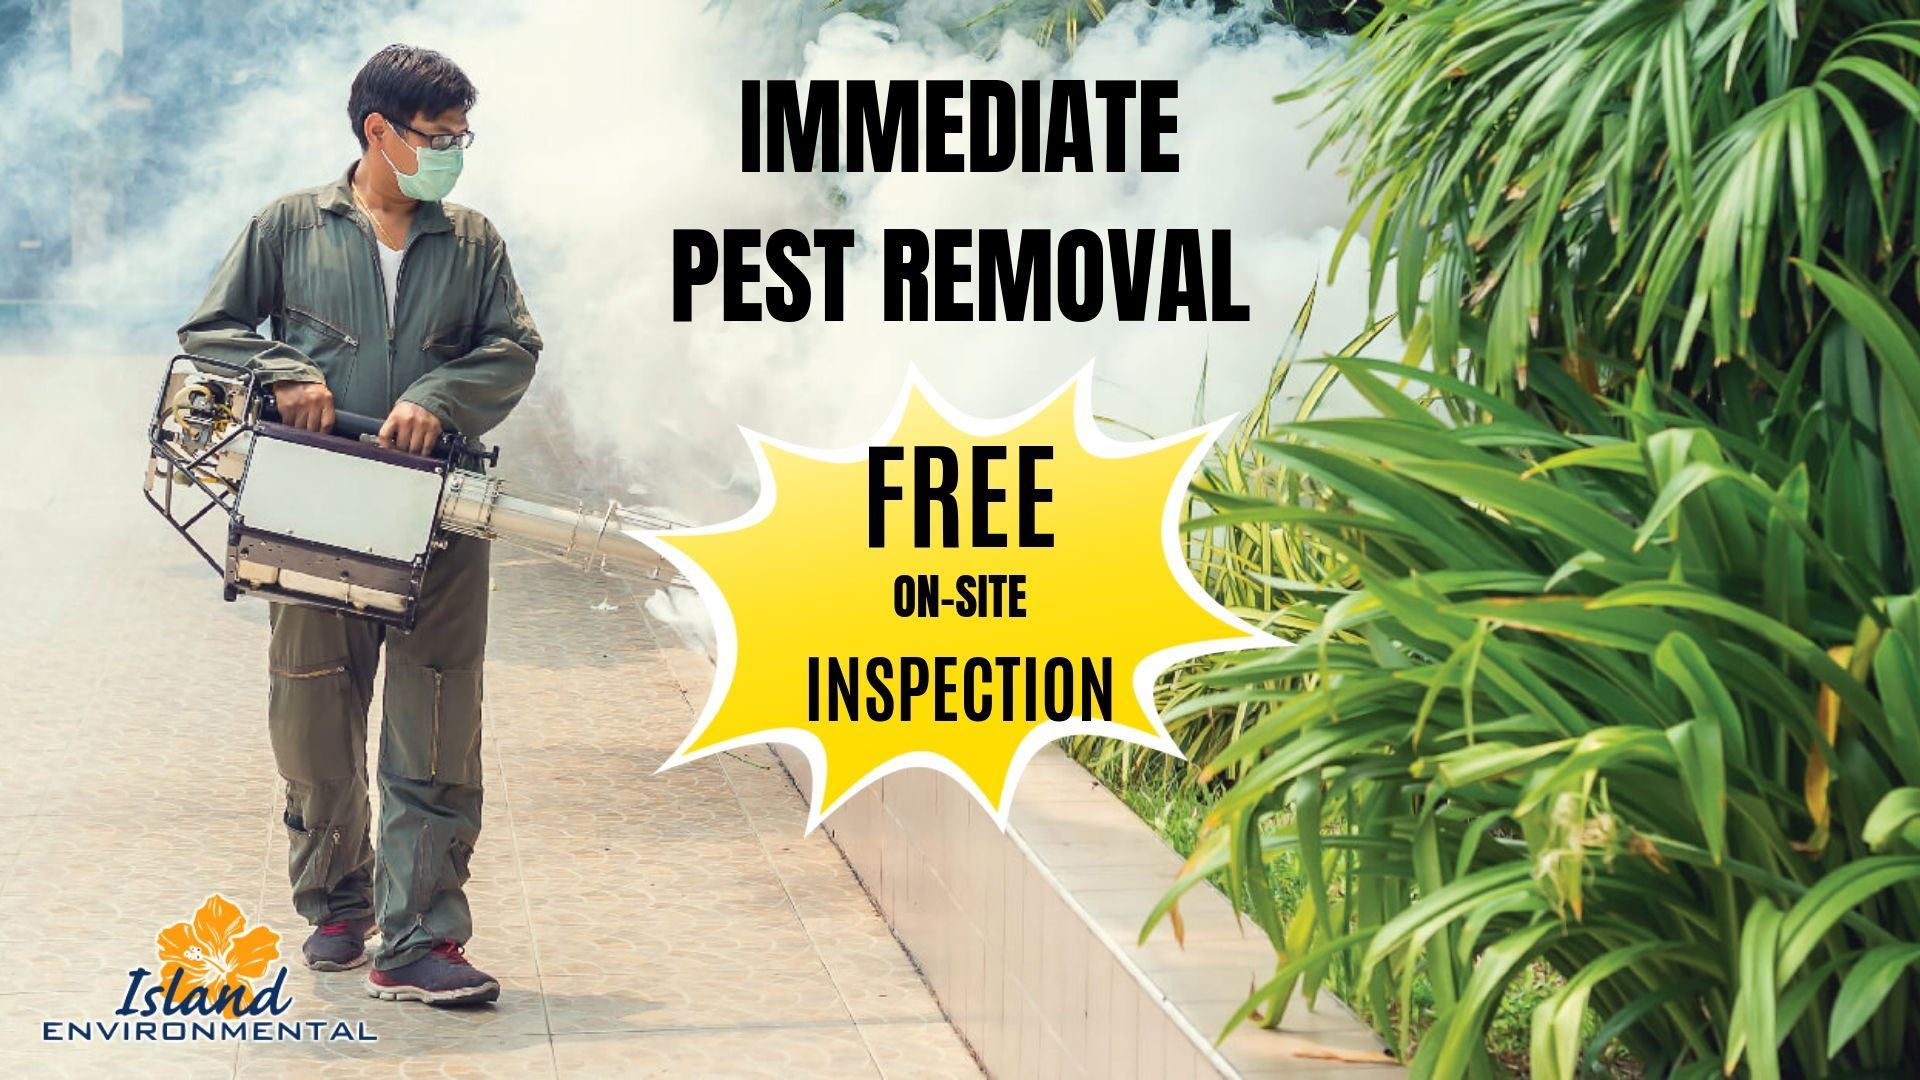 Looking For Pest Control Exterminators Contact Island Environmental Pest Control Our Technicians Are Knowledgeable In The Pest Control Pests Royal Palm Beach